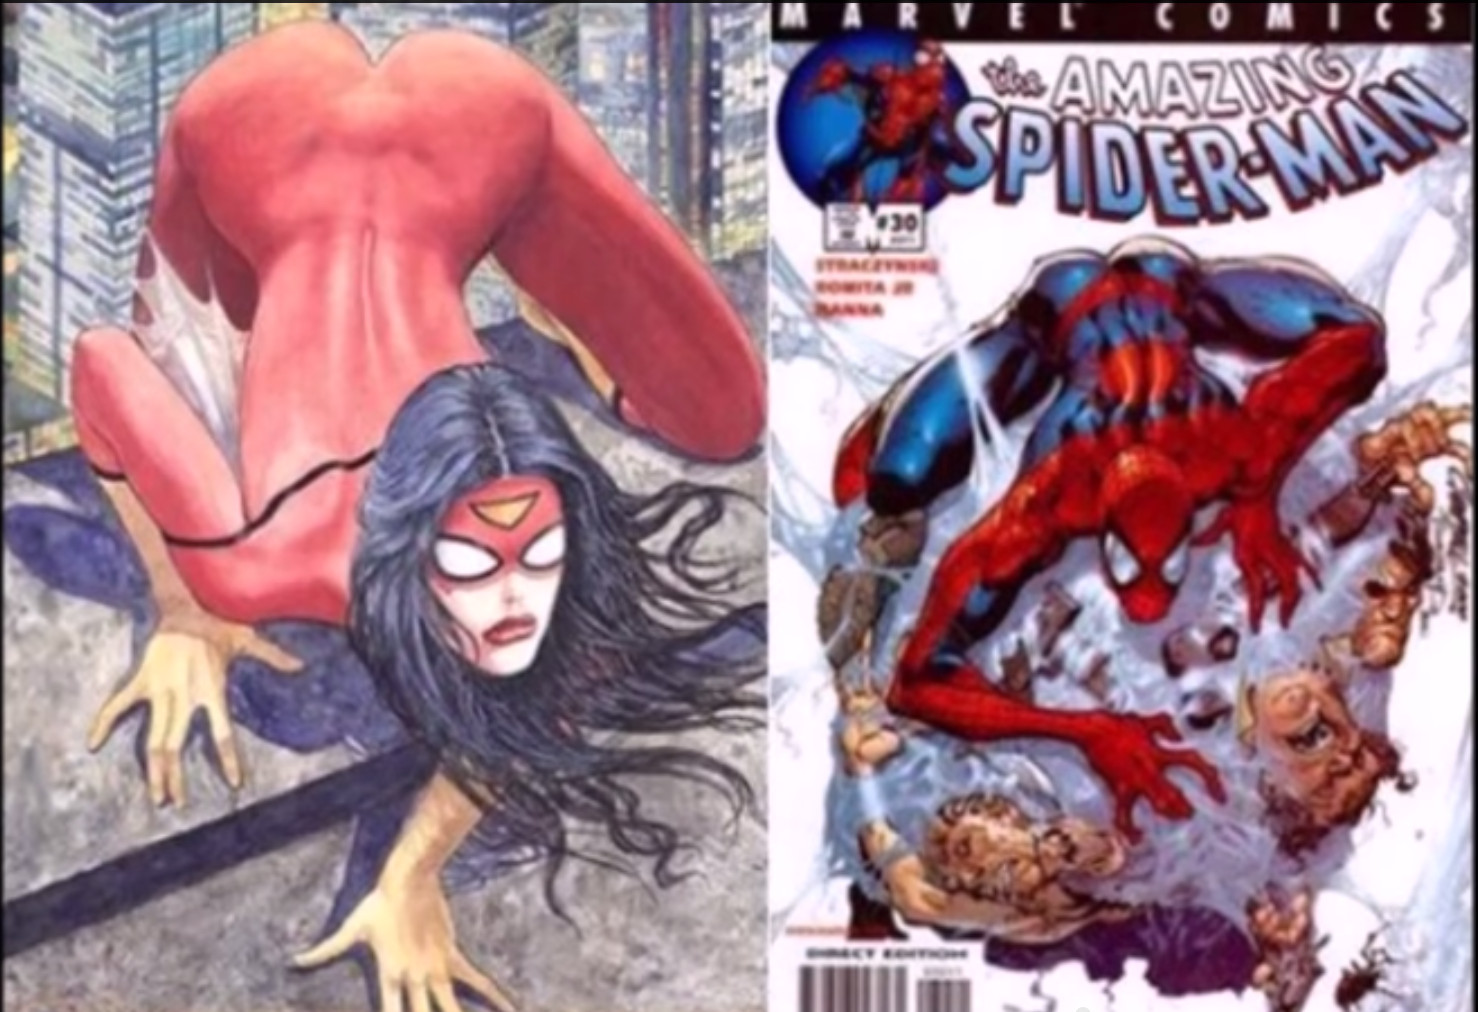 Marvel spider woman cover